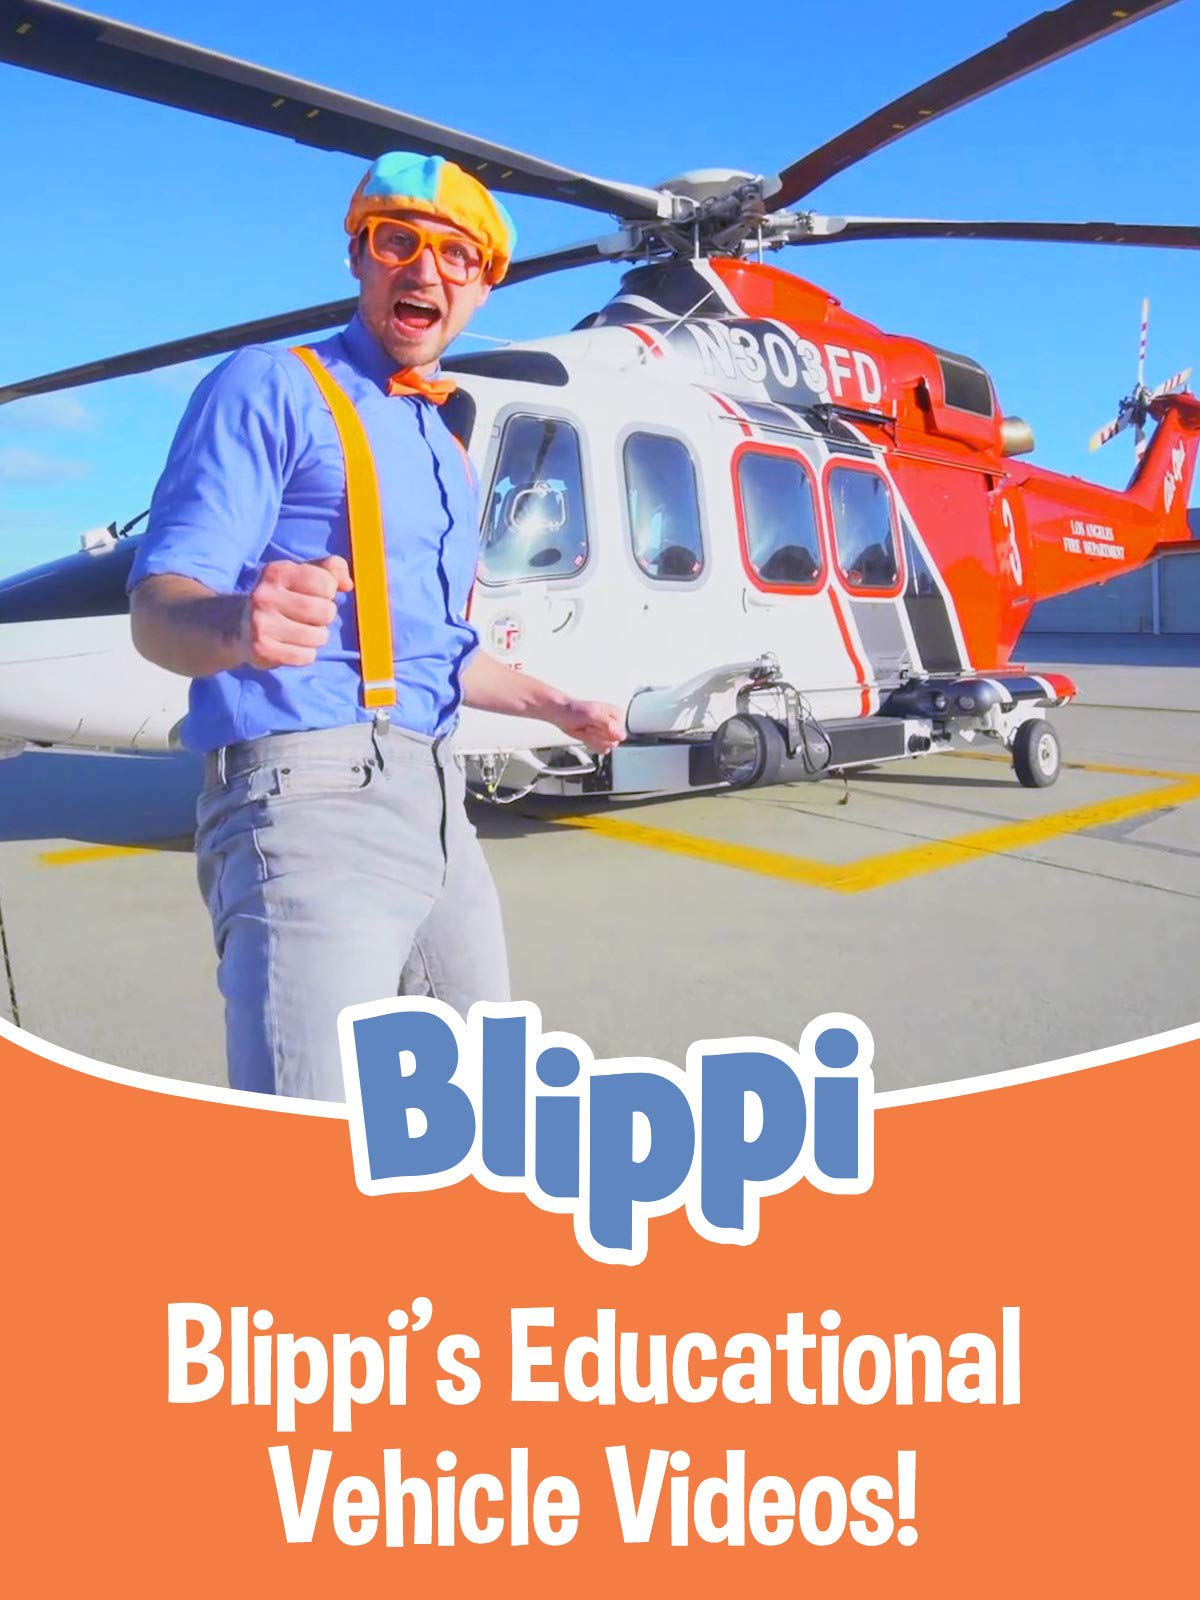 Blippi's Educational Vehicle Videos!